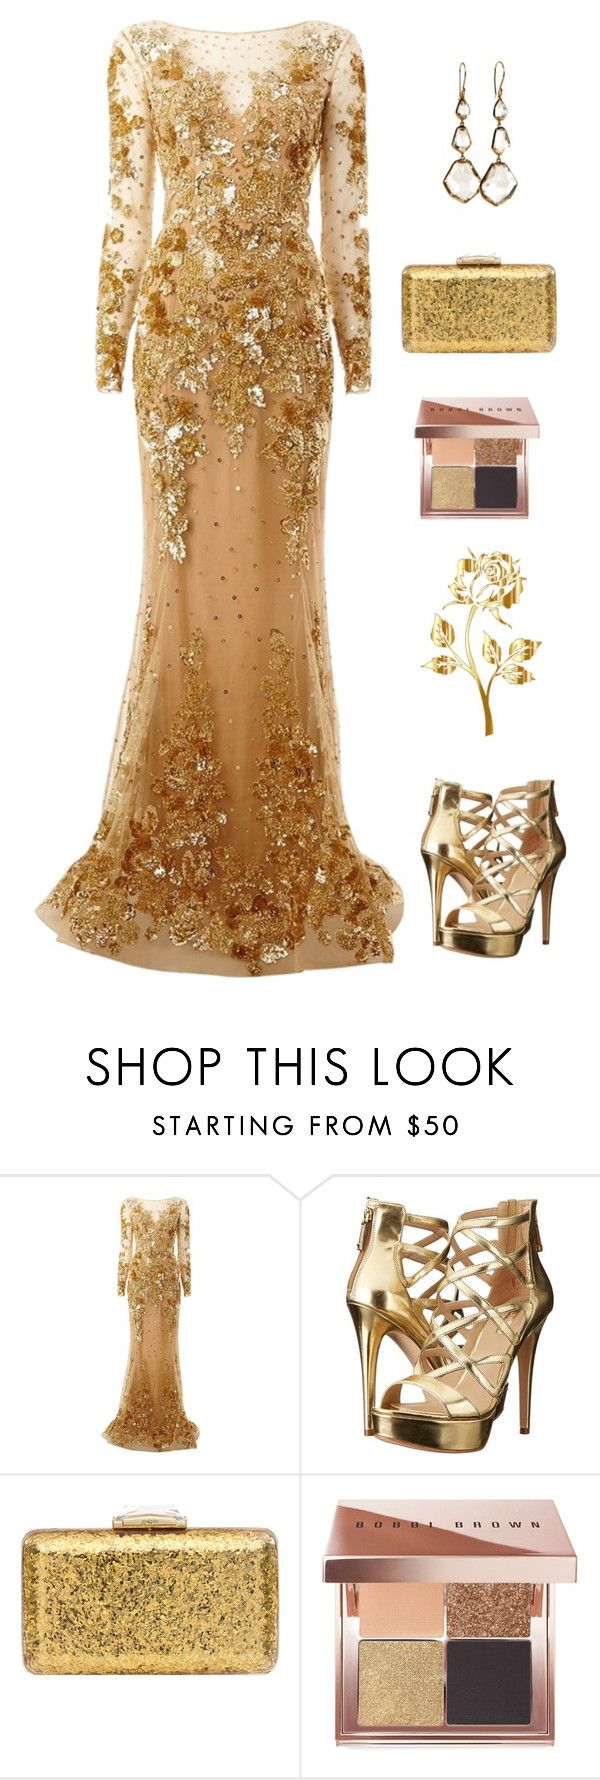 """Gold night"" by cristina-barberis ❤ liked on Polyvore featuring Zuhair Murad, GUESS, KOTUR, Bobbi Brown Cosmetics and Ippolita"